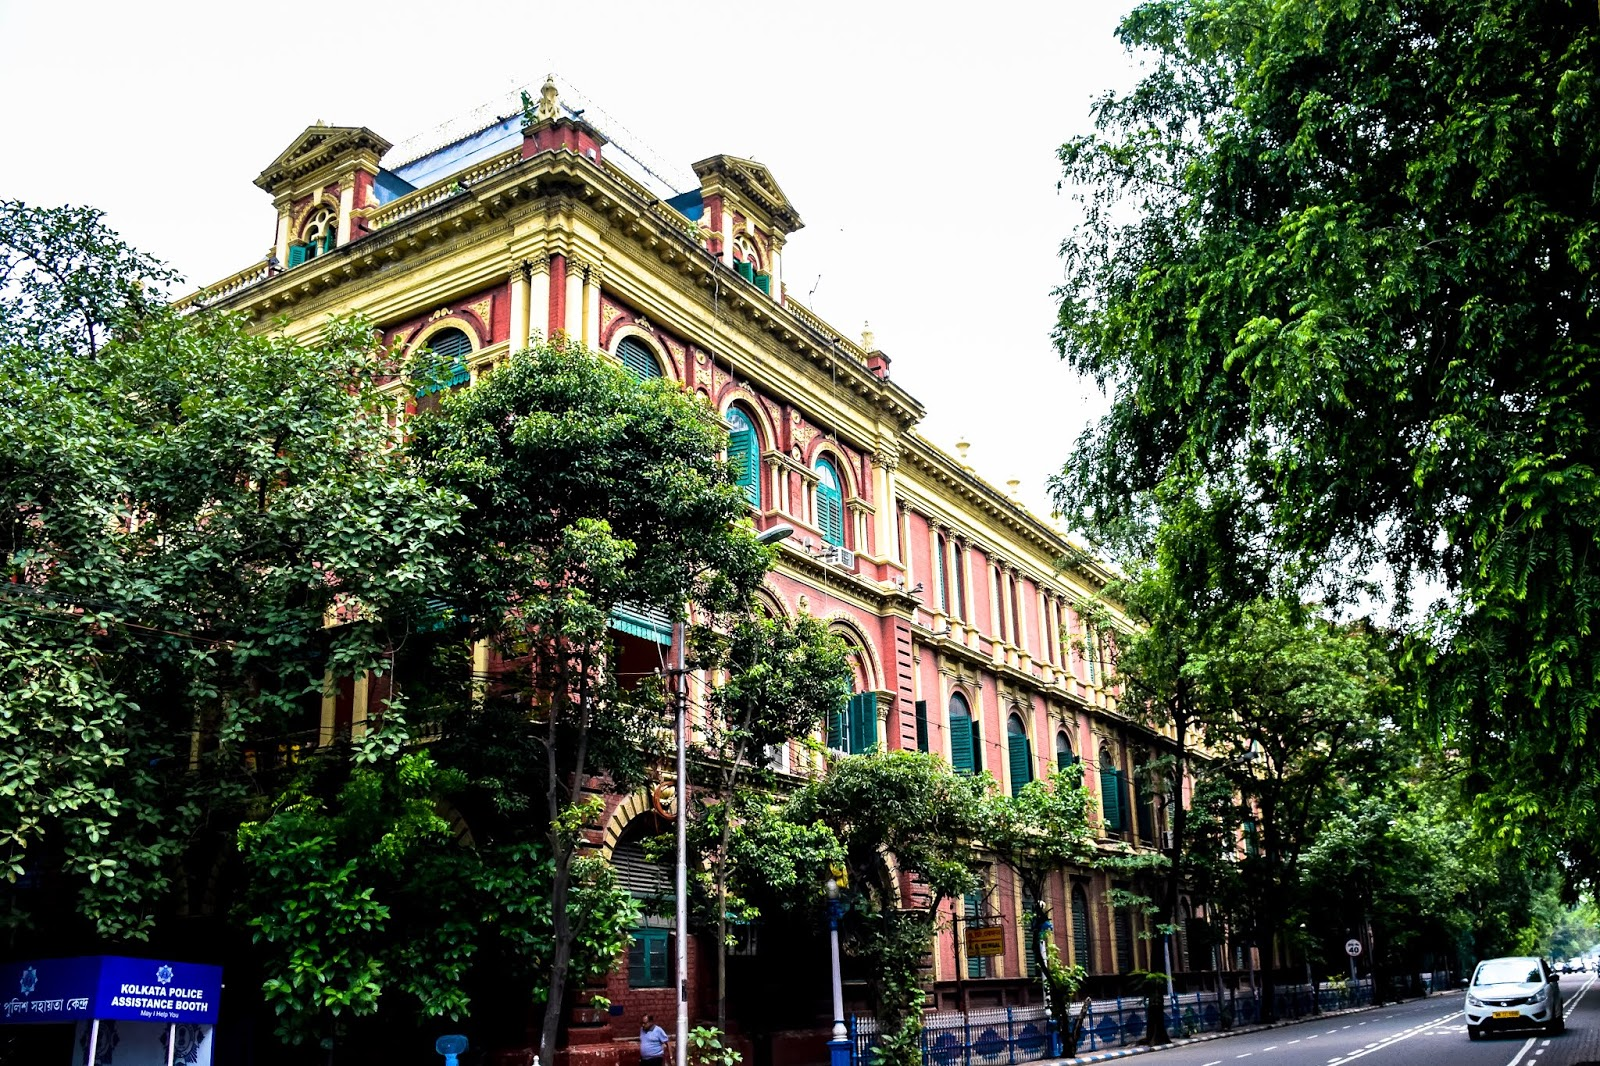 The Treasury Building Kolkata @DoiBedouin